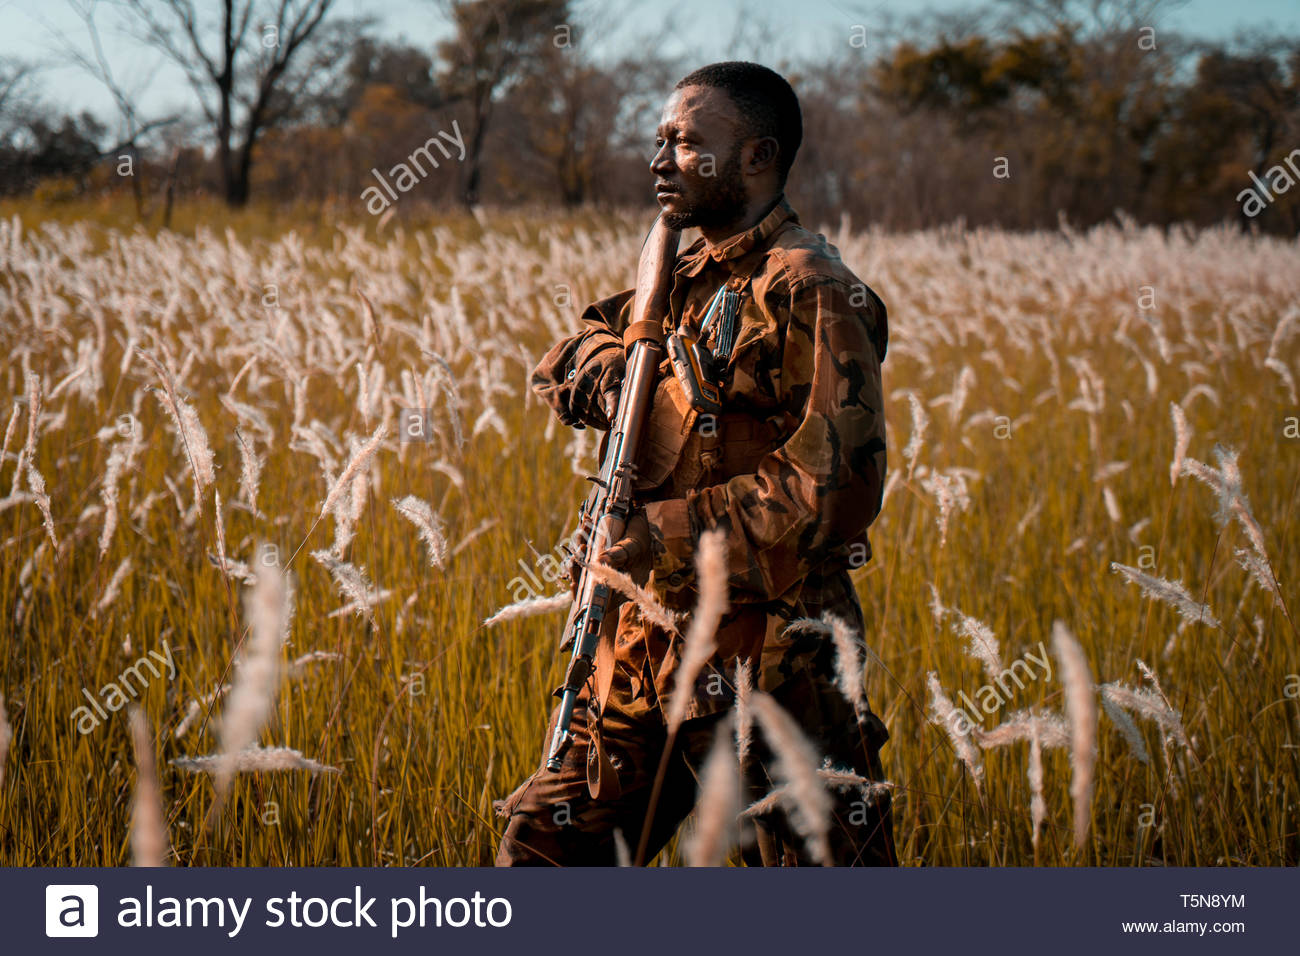 Anti poaching ranger patrolling in the central african grasslands. - Stock Image